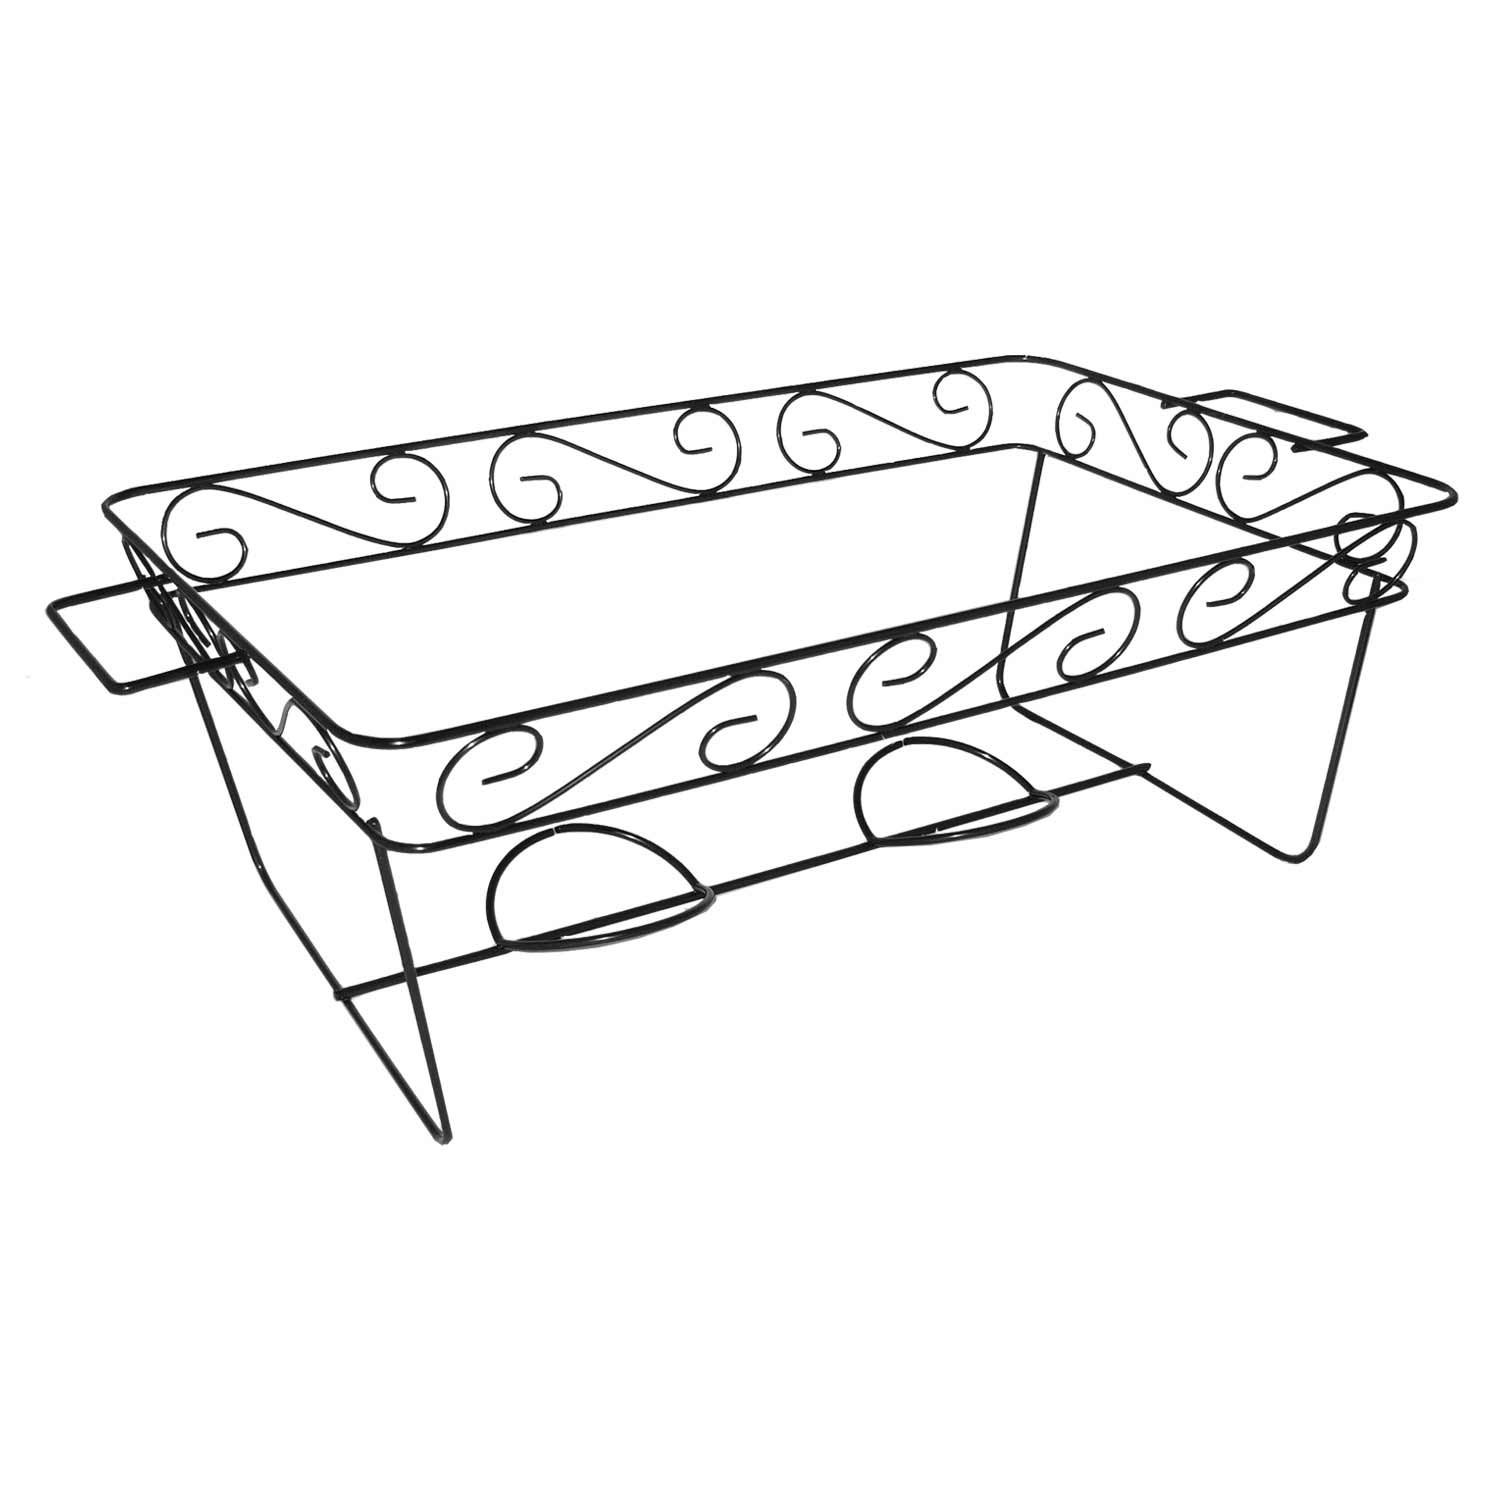 Party Essentials Elegance Full Size Chafing Rack, 7-3/8'' Height x 12-7/8'' Width x 11-7/8'' Length, Black (Case of 12)